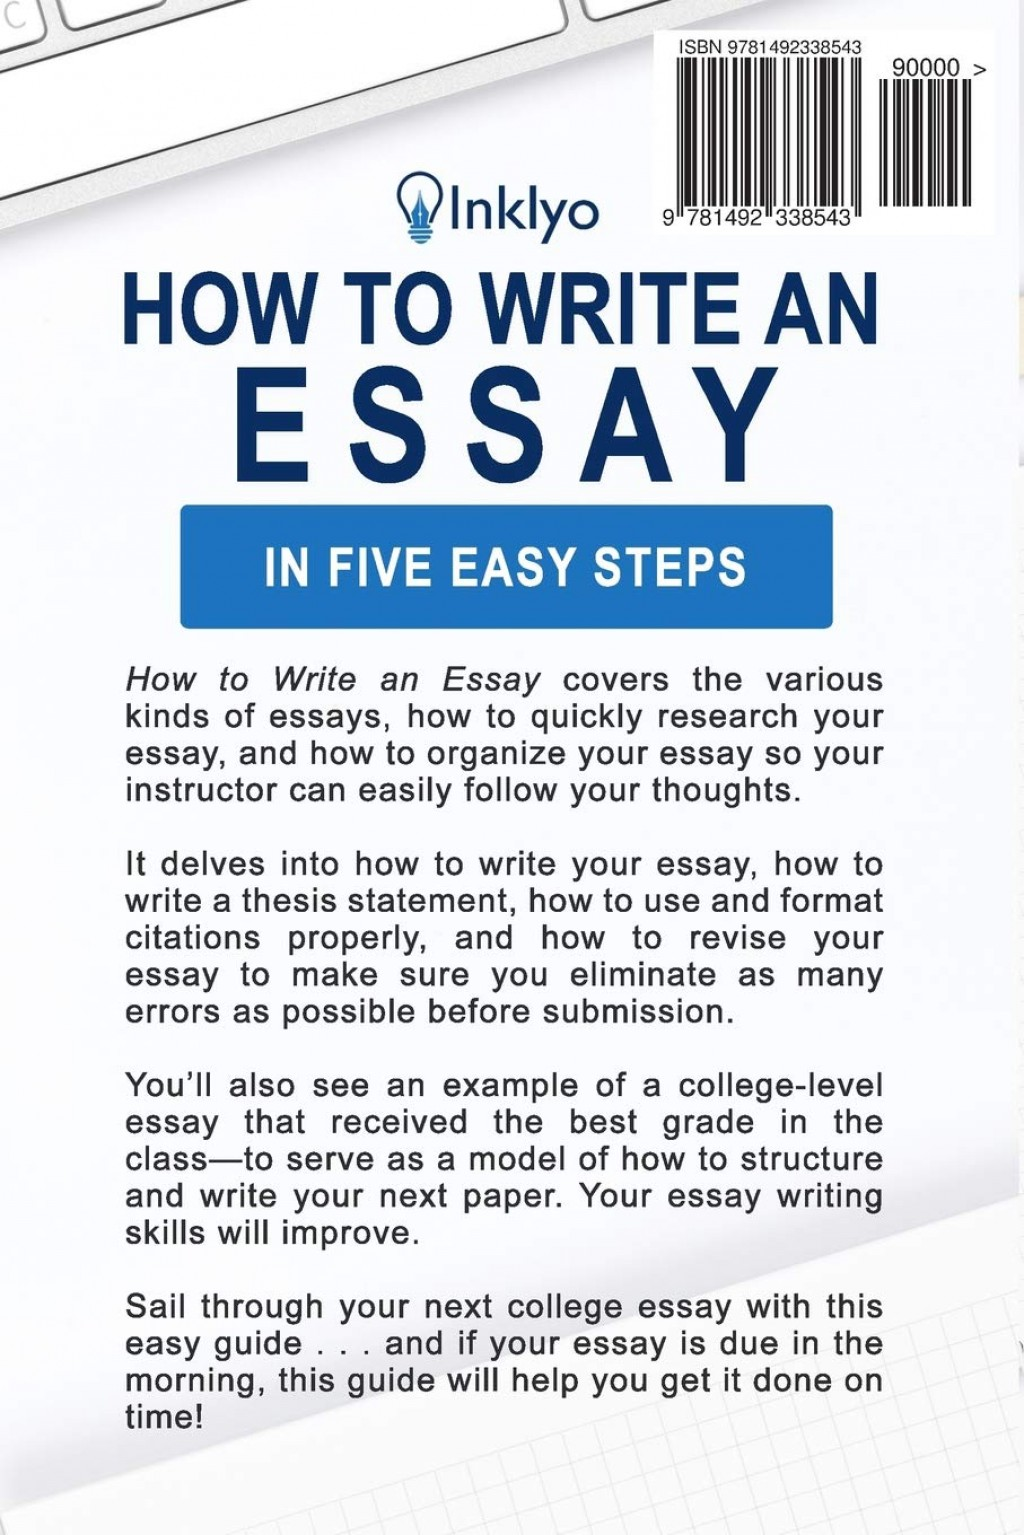 002 How To Write An Essay Example Shocking About Yourself Conclusion Pdf Academic Fast Large